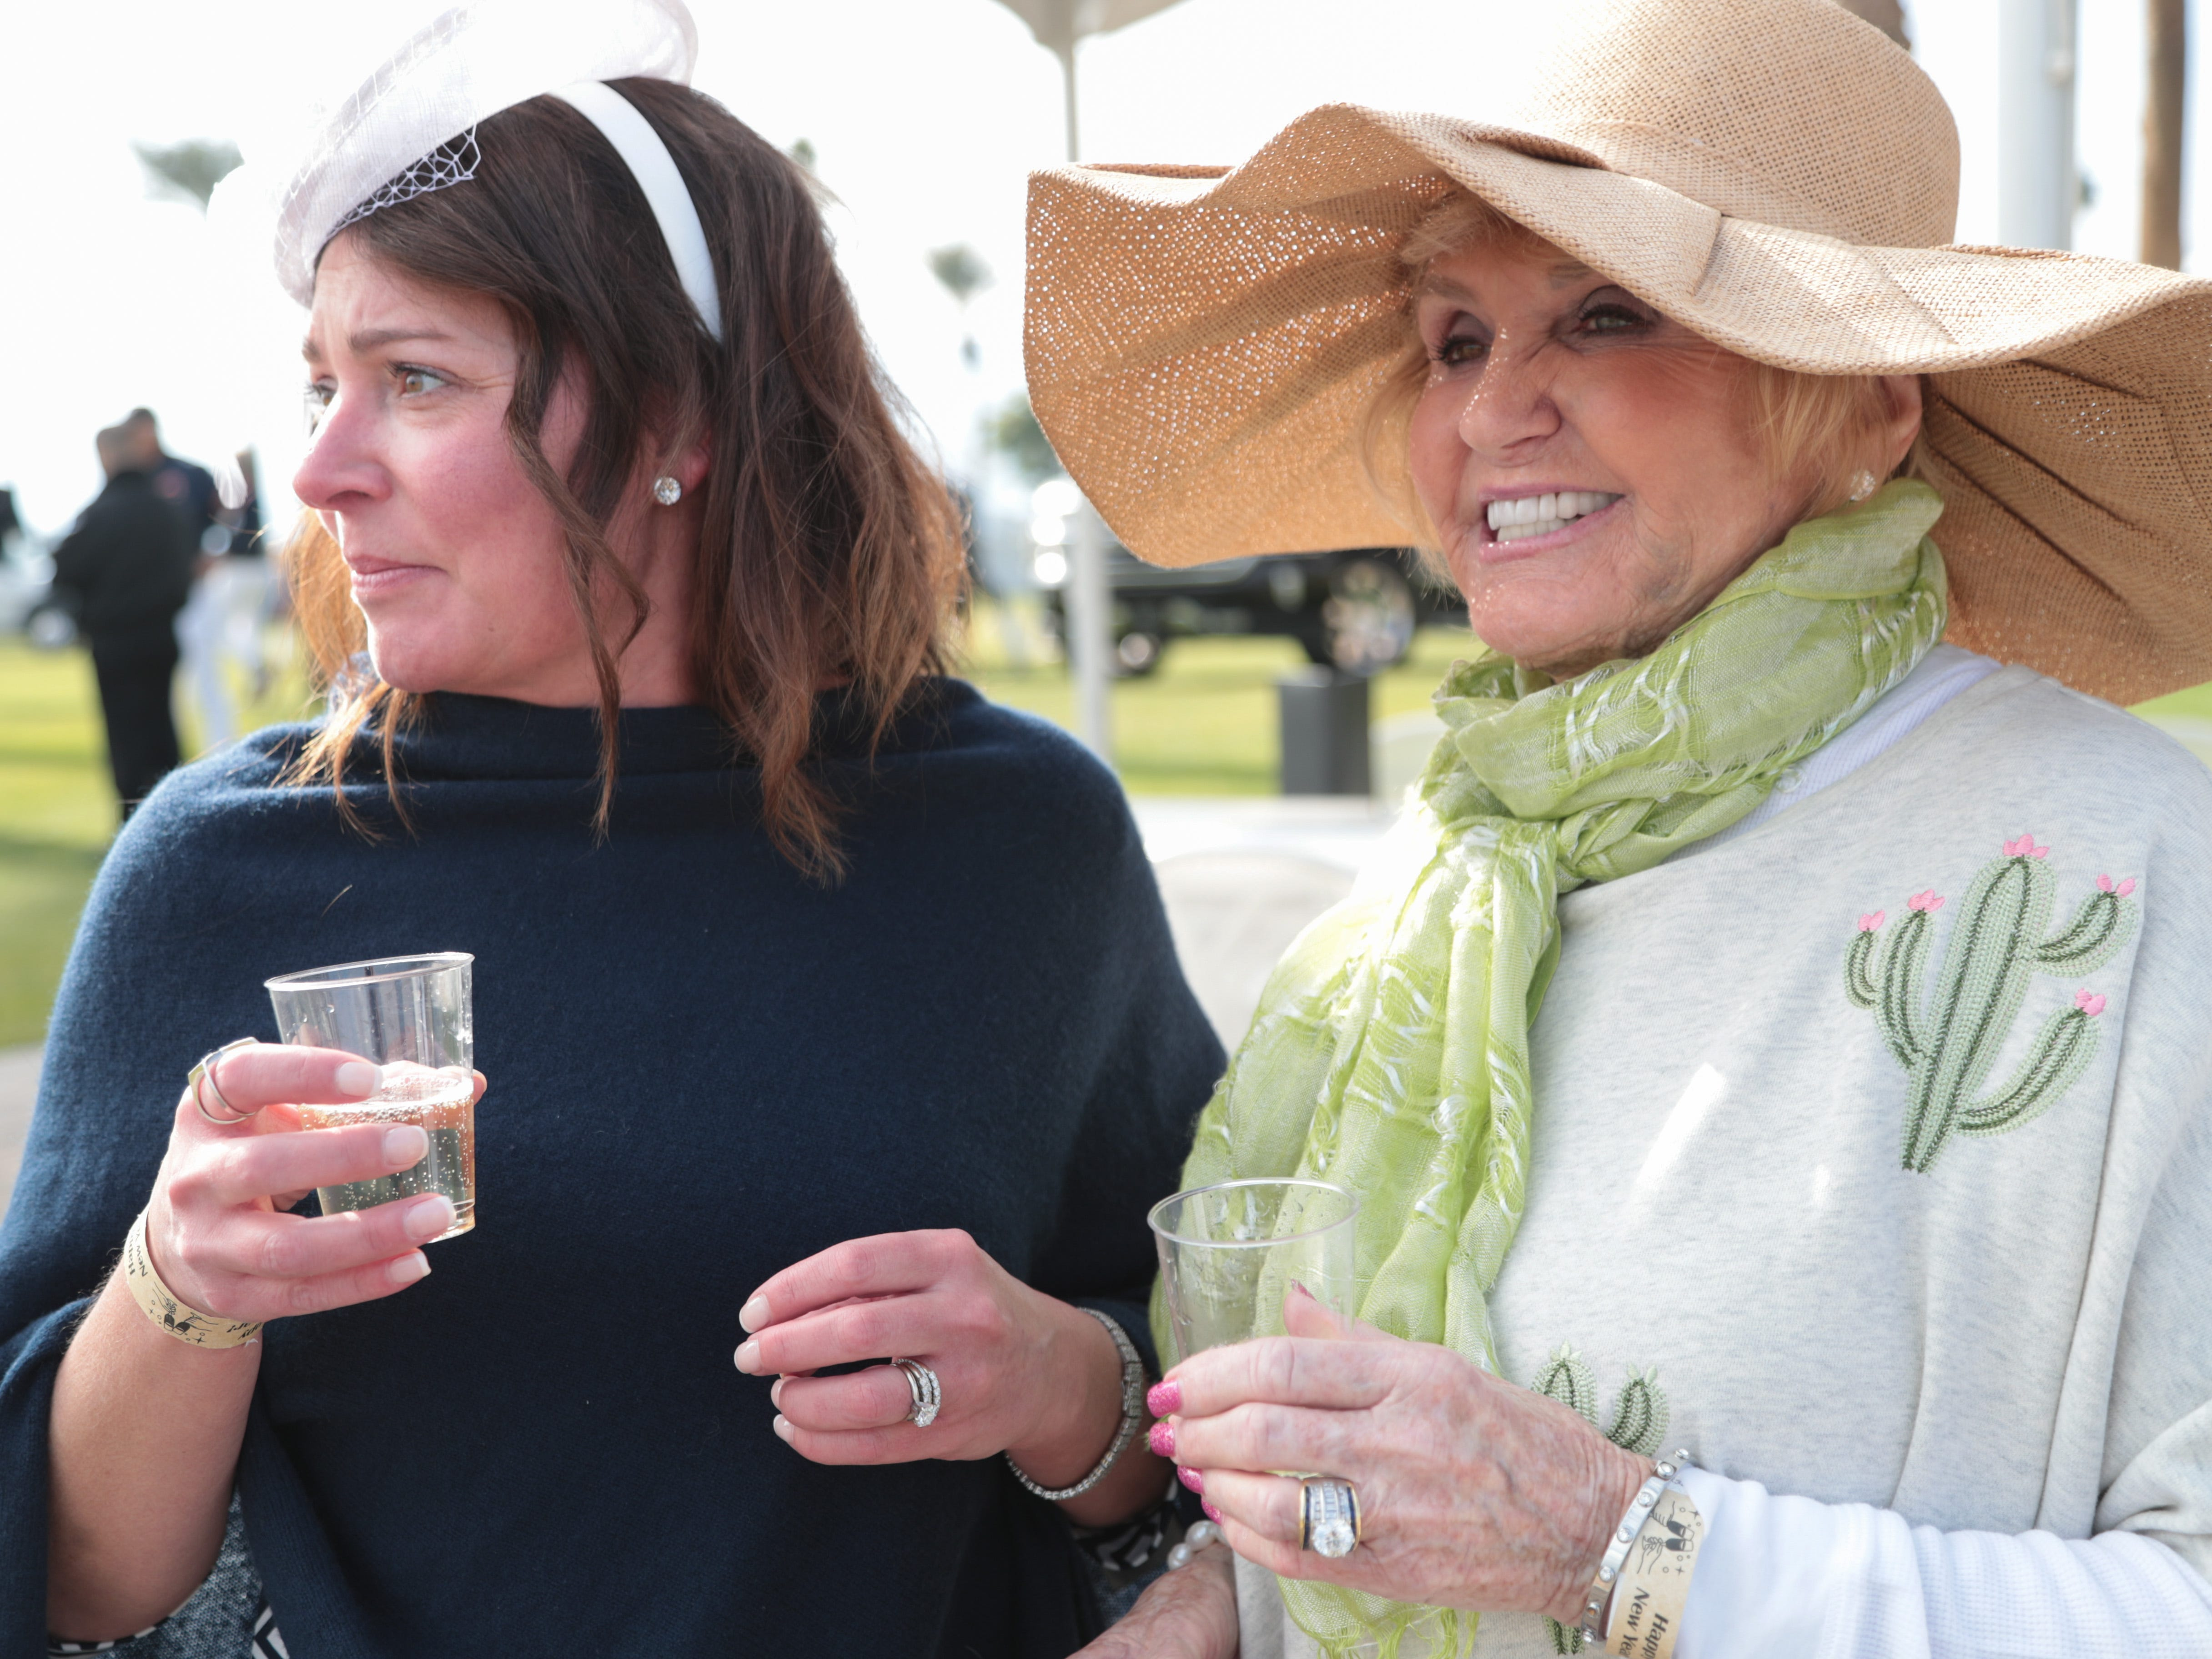 Jessica Morris, left, and Sandra Sladek watch the first match of opening day at the Empire Polo Club, Indio, Calif., Sunday, January 6, 2018.